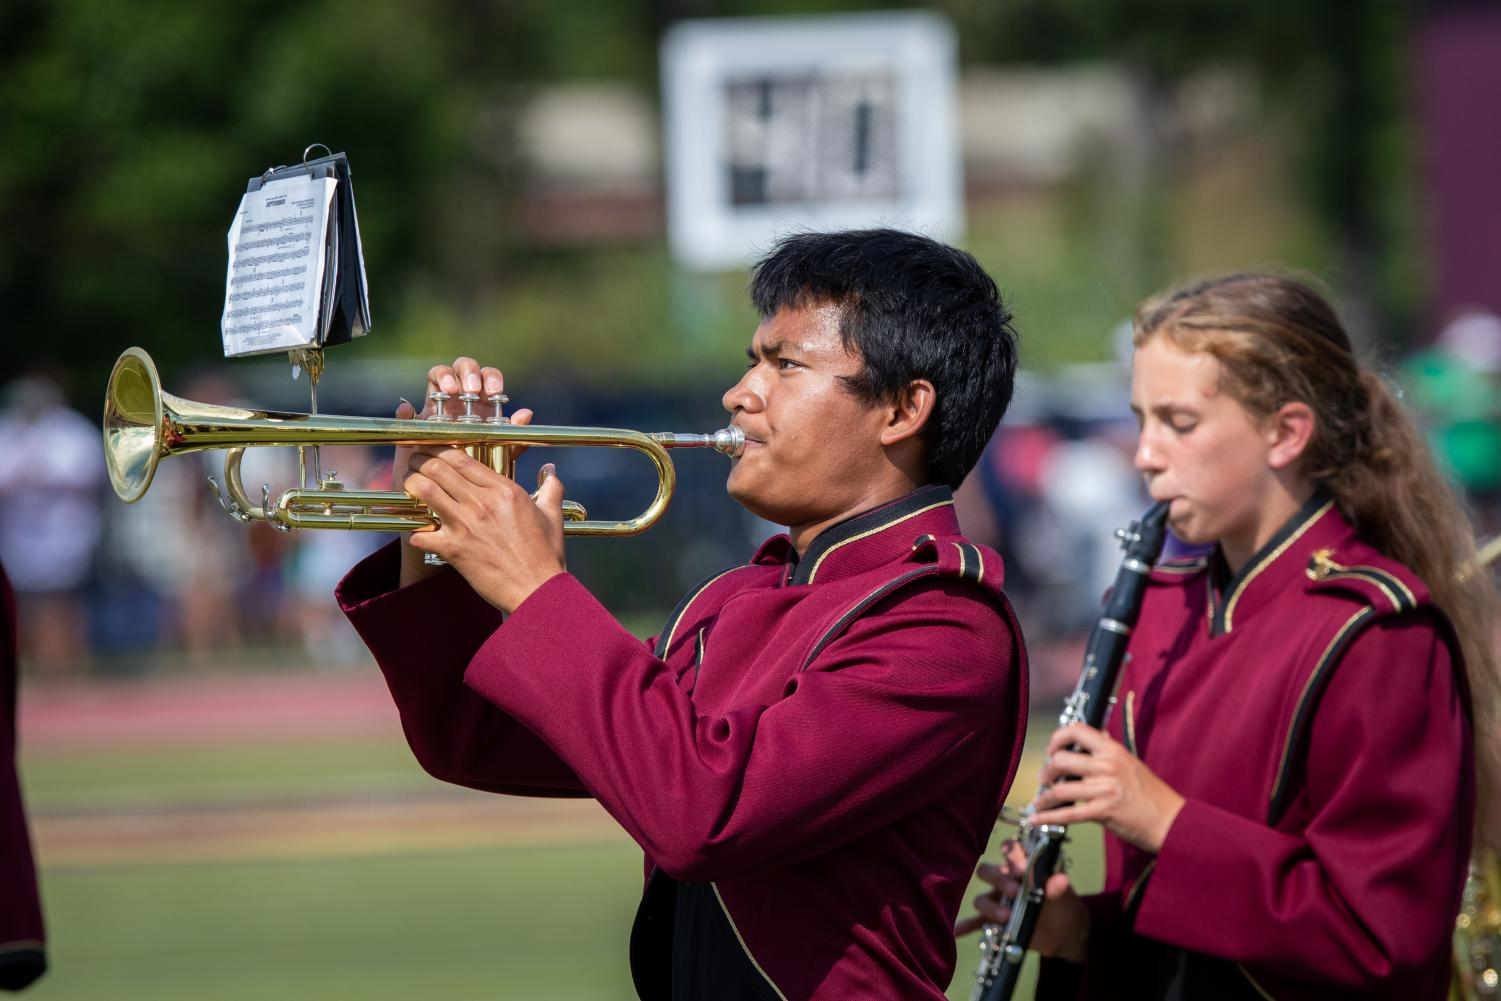 The band adds extra energy to football games. This week, they'll showcase their skills at their Fall Concert.